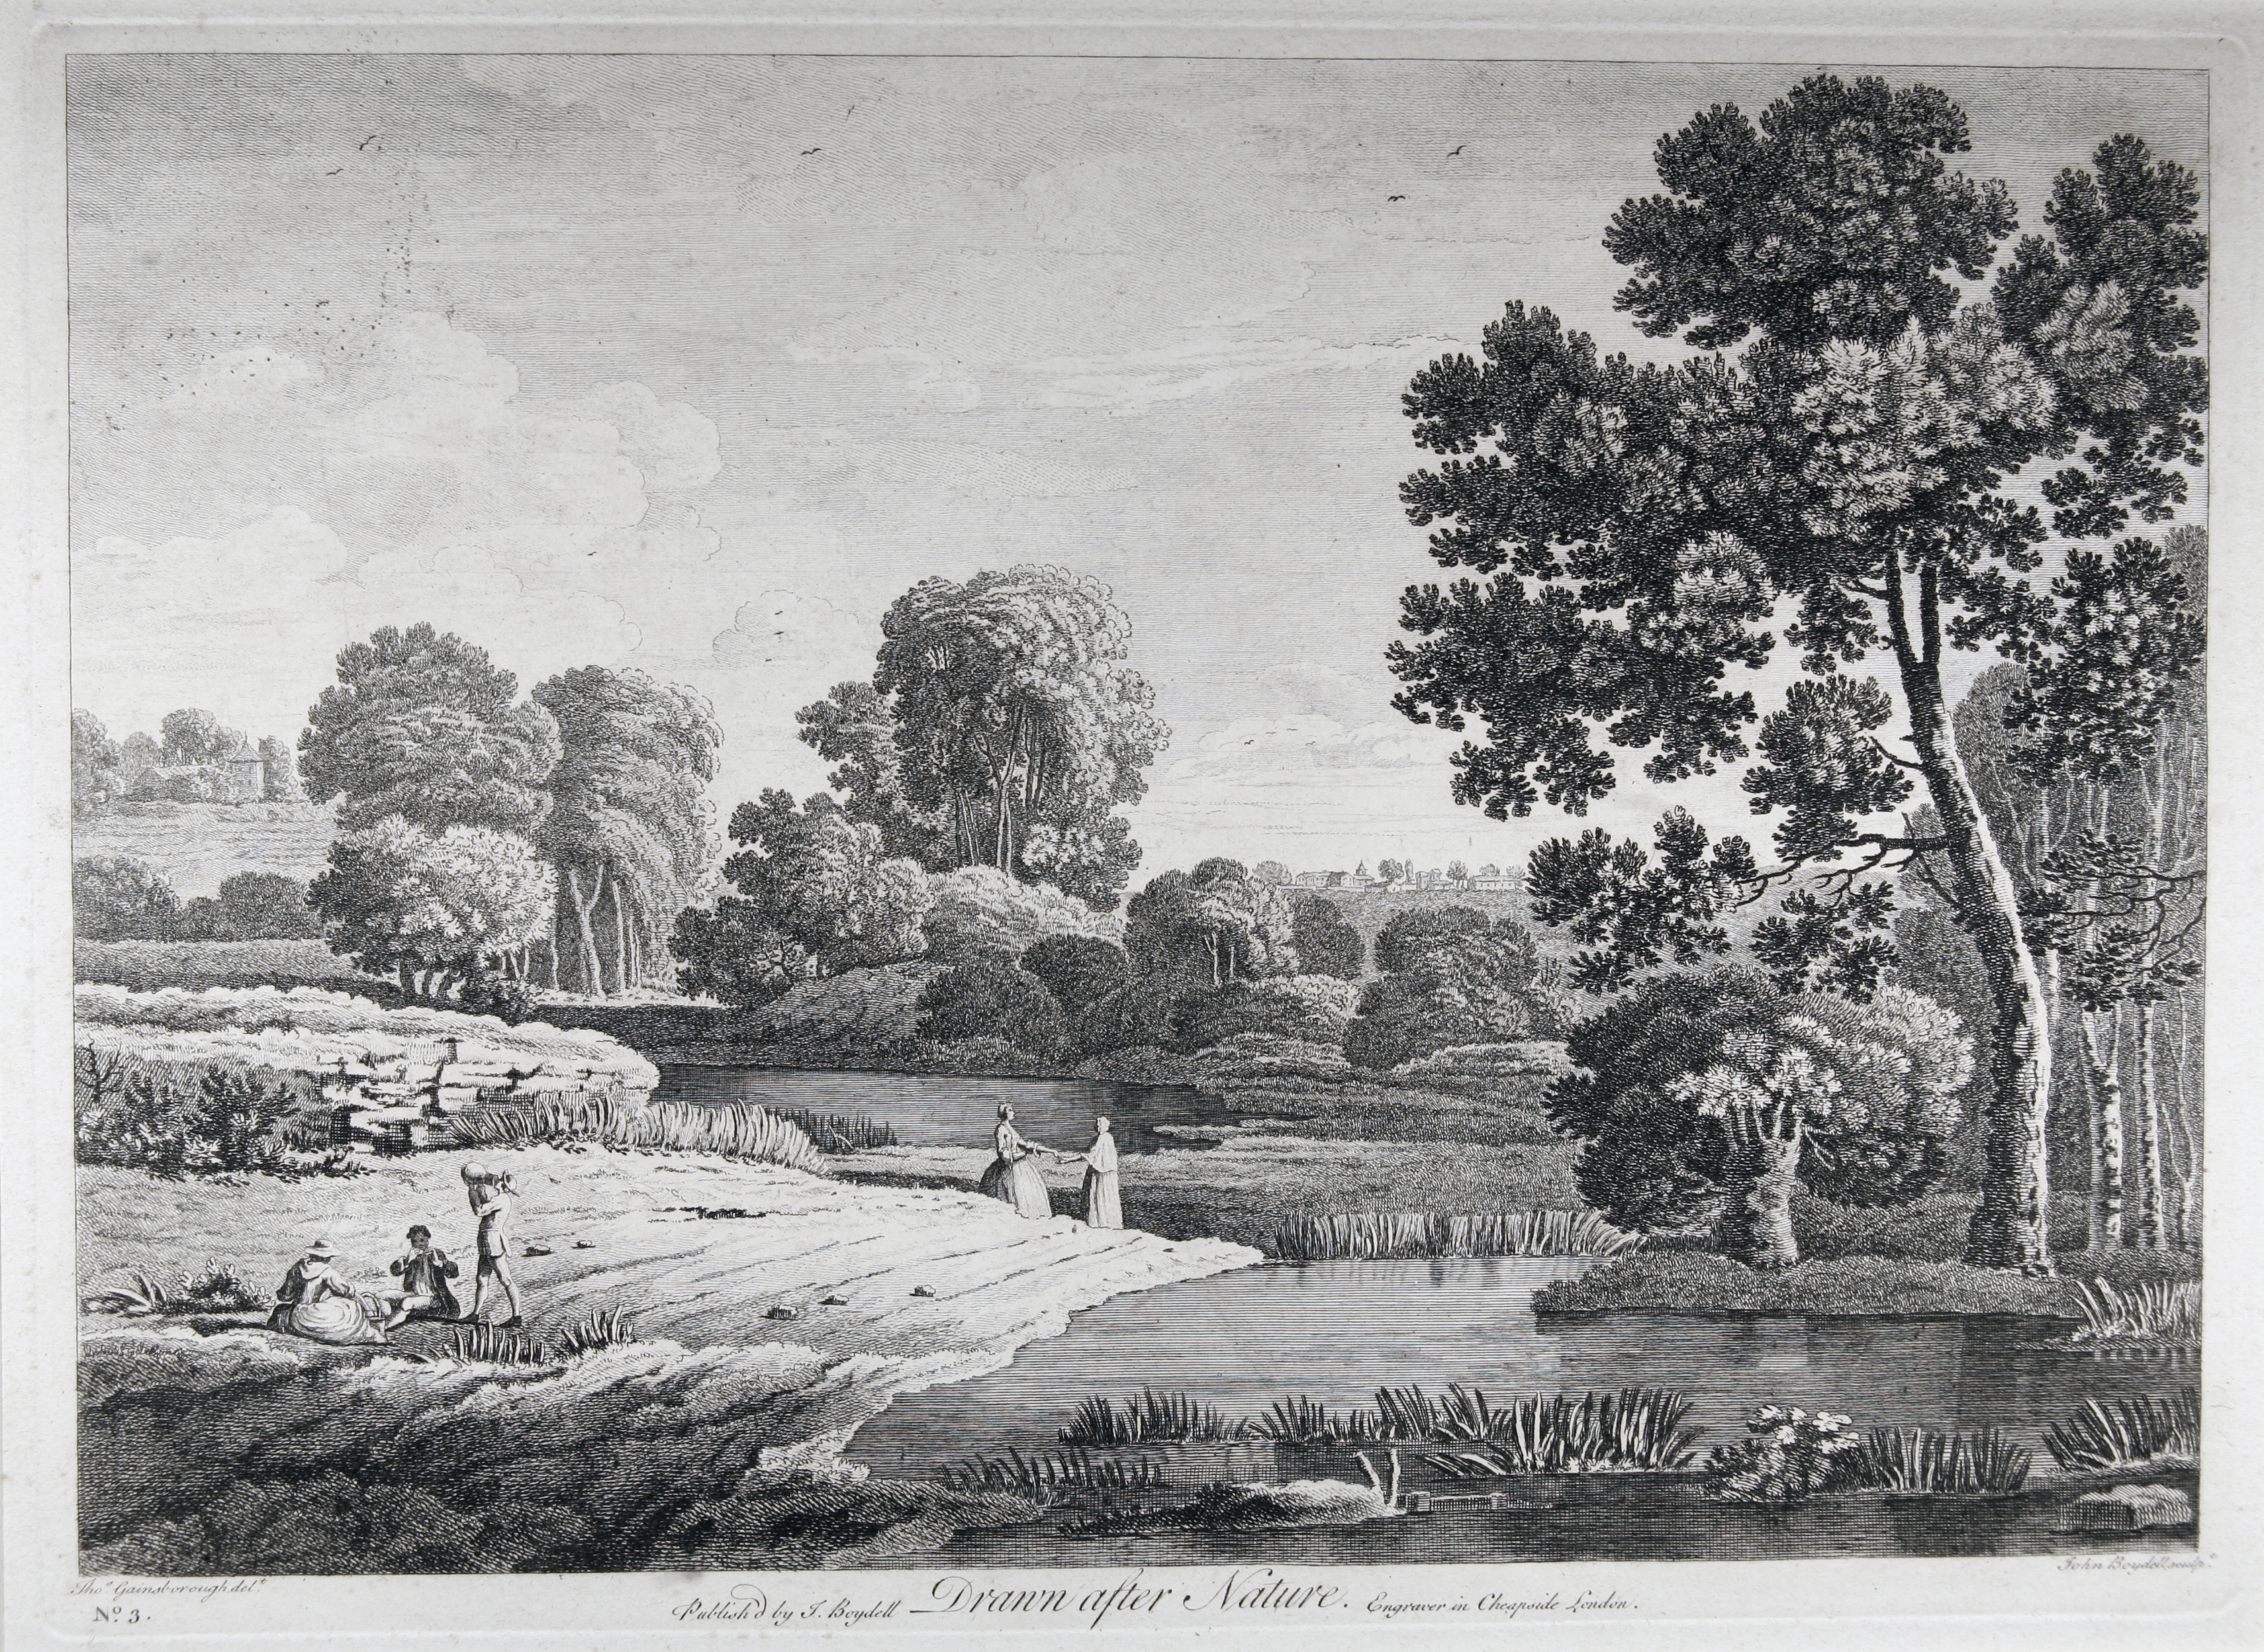 John Boydell (1720-1804) after Thomas Gainsborough (1727-88), Drawn after Nature, Cheapside, London, John Boydell, 1747, etching and engraving, 250 x 344 mm, British Museum, London (1912,0802.46)